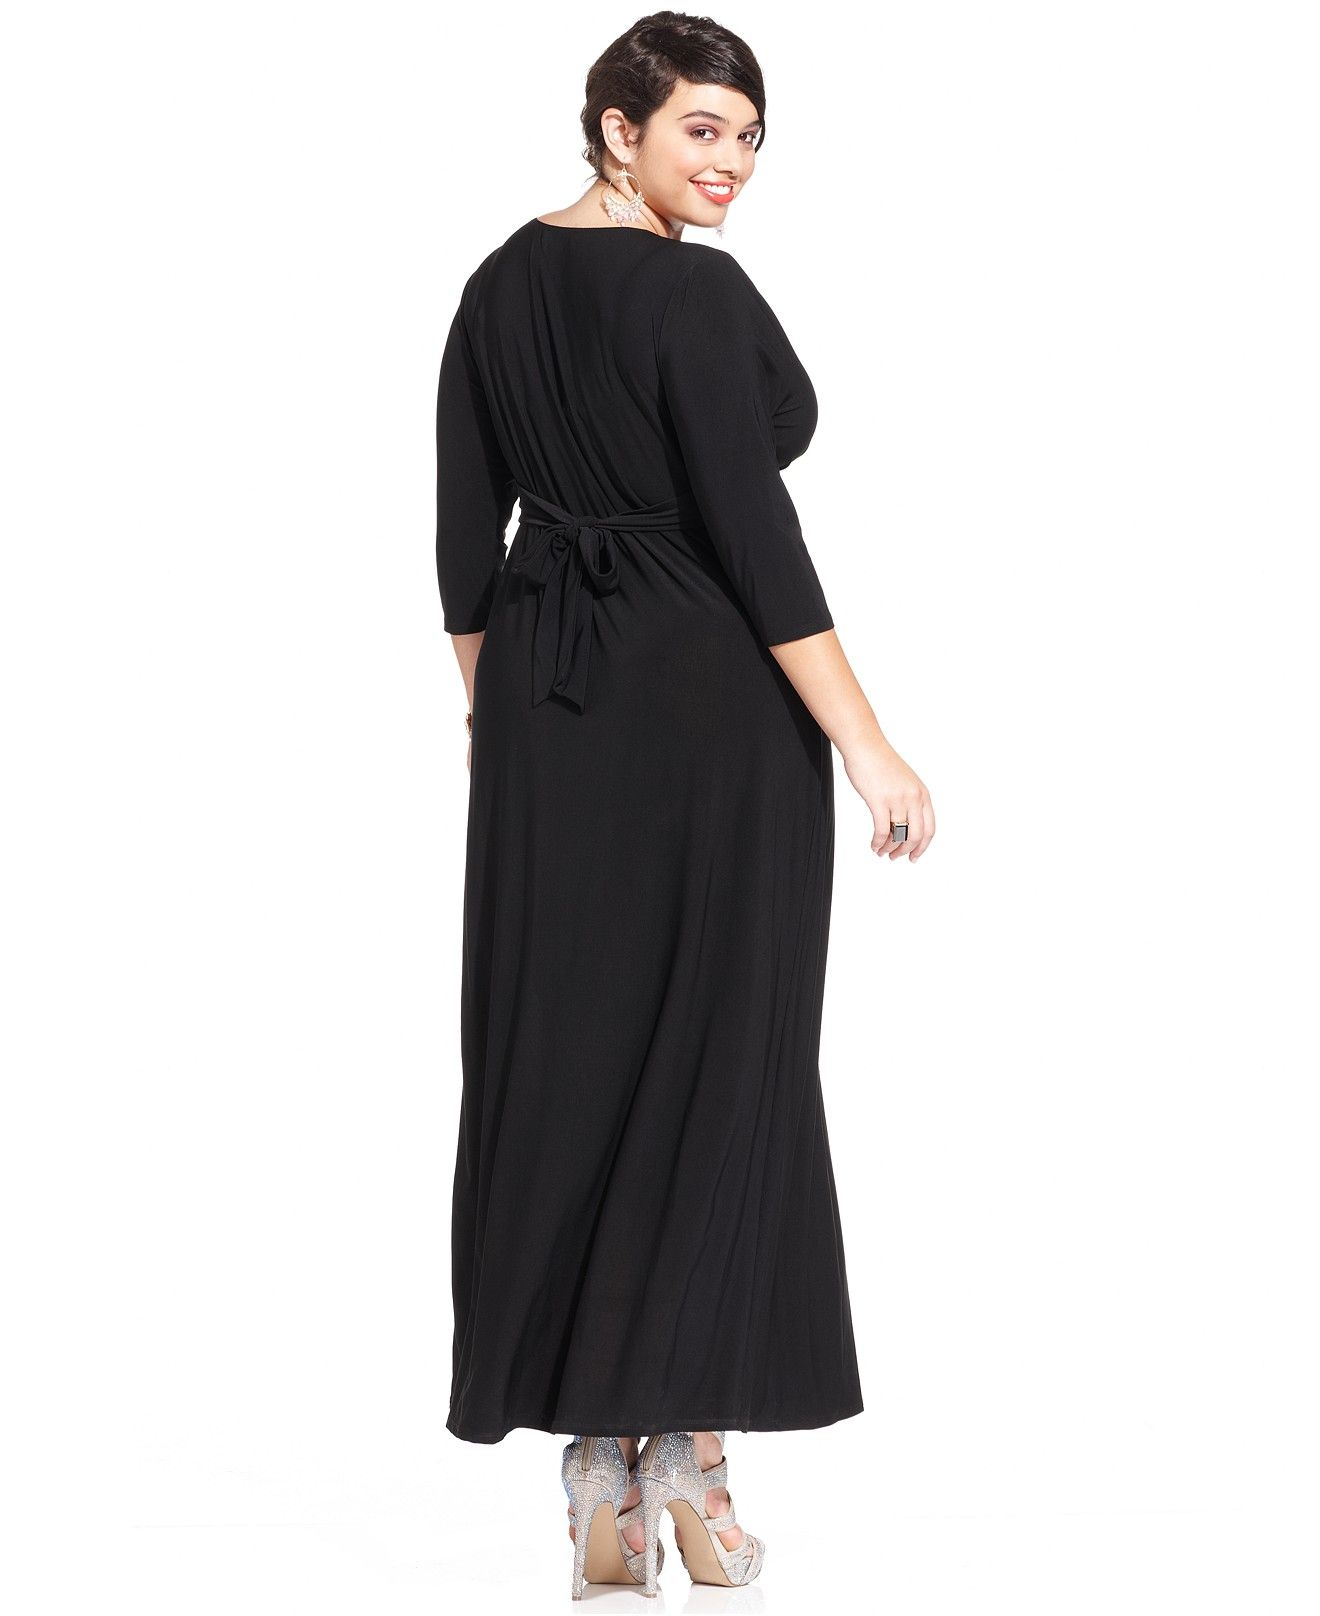 Plus Size Three-Quarter-Sleeve Knotted Maxi Dress | I want ...